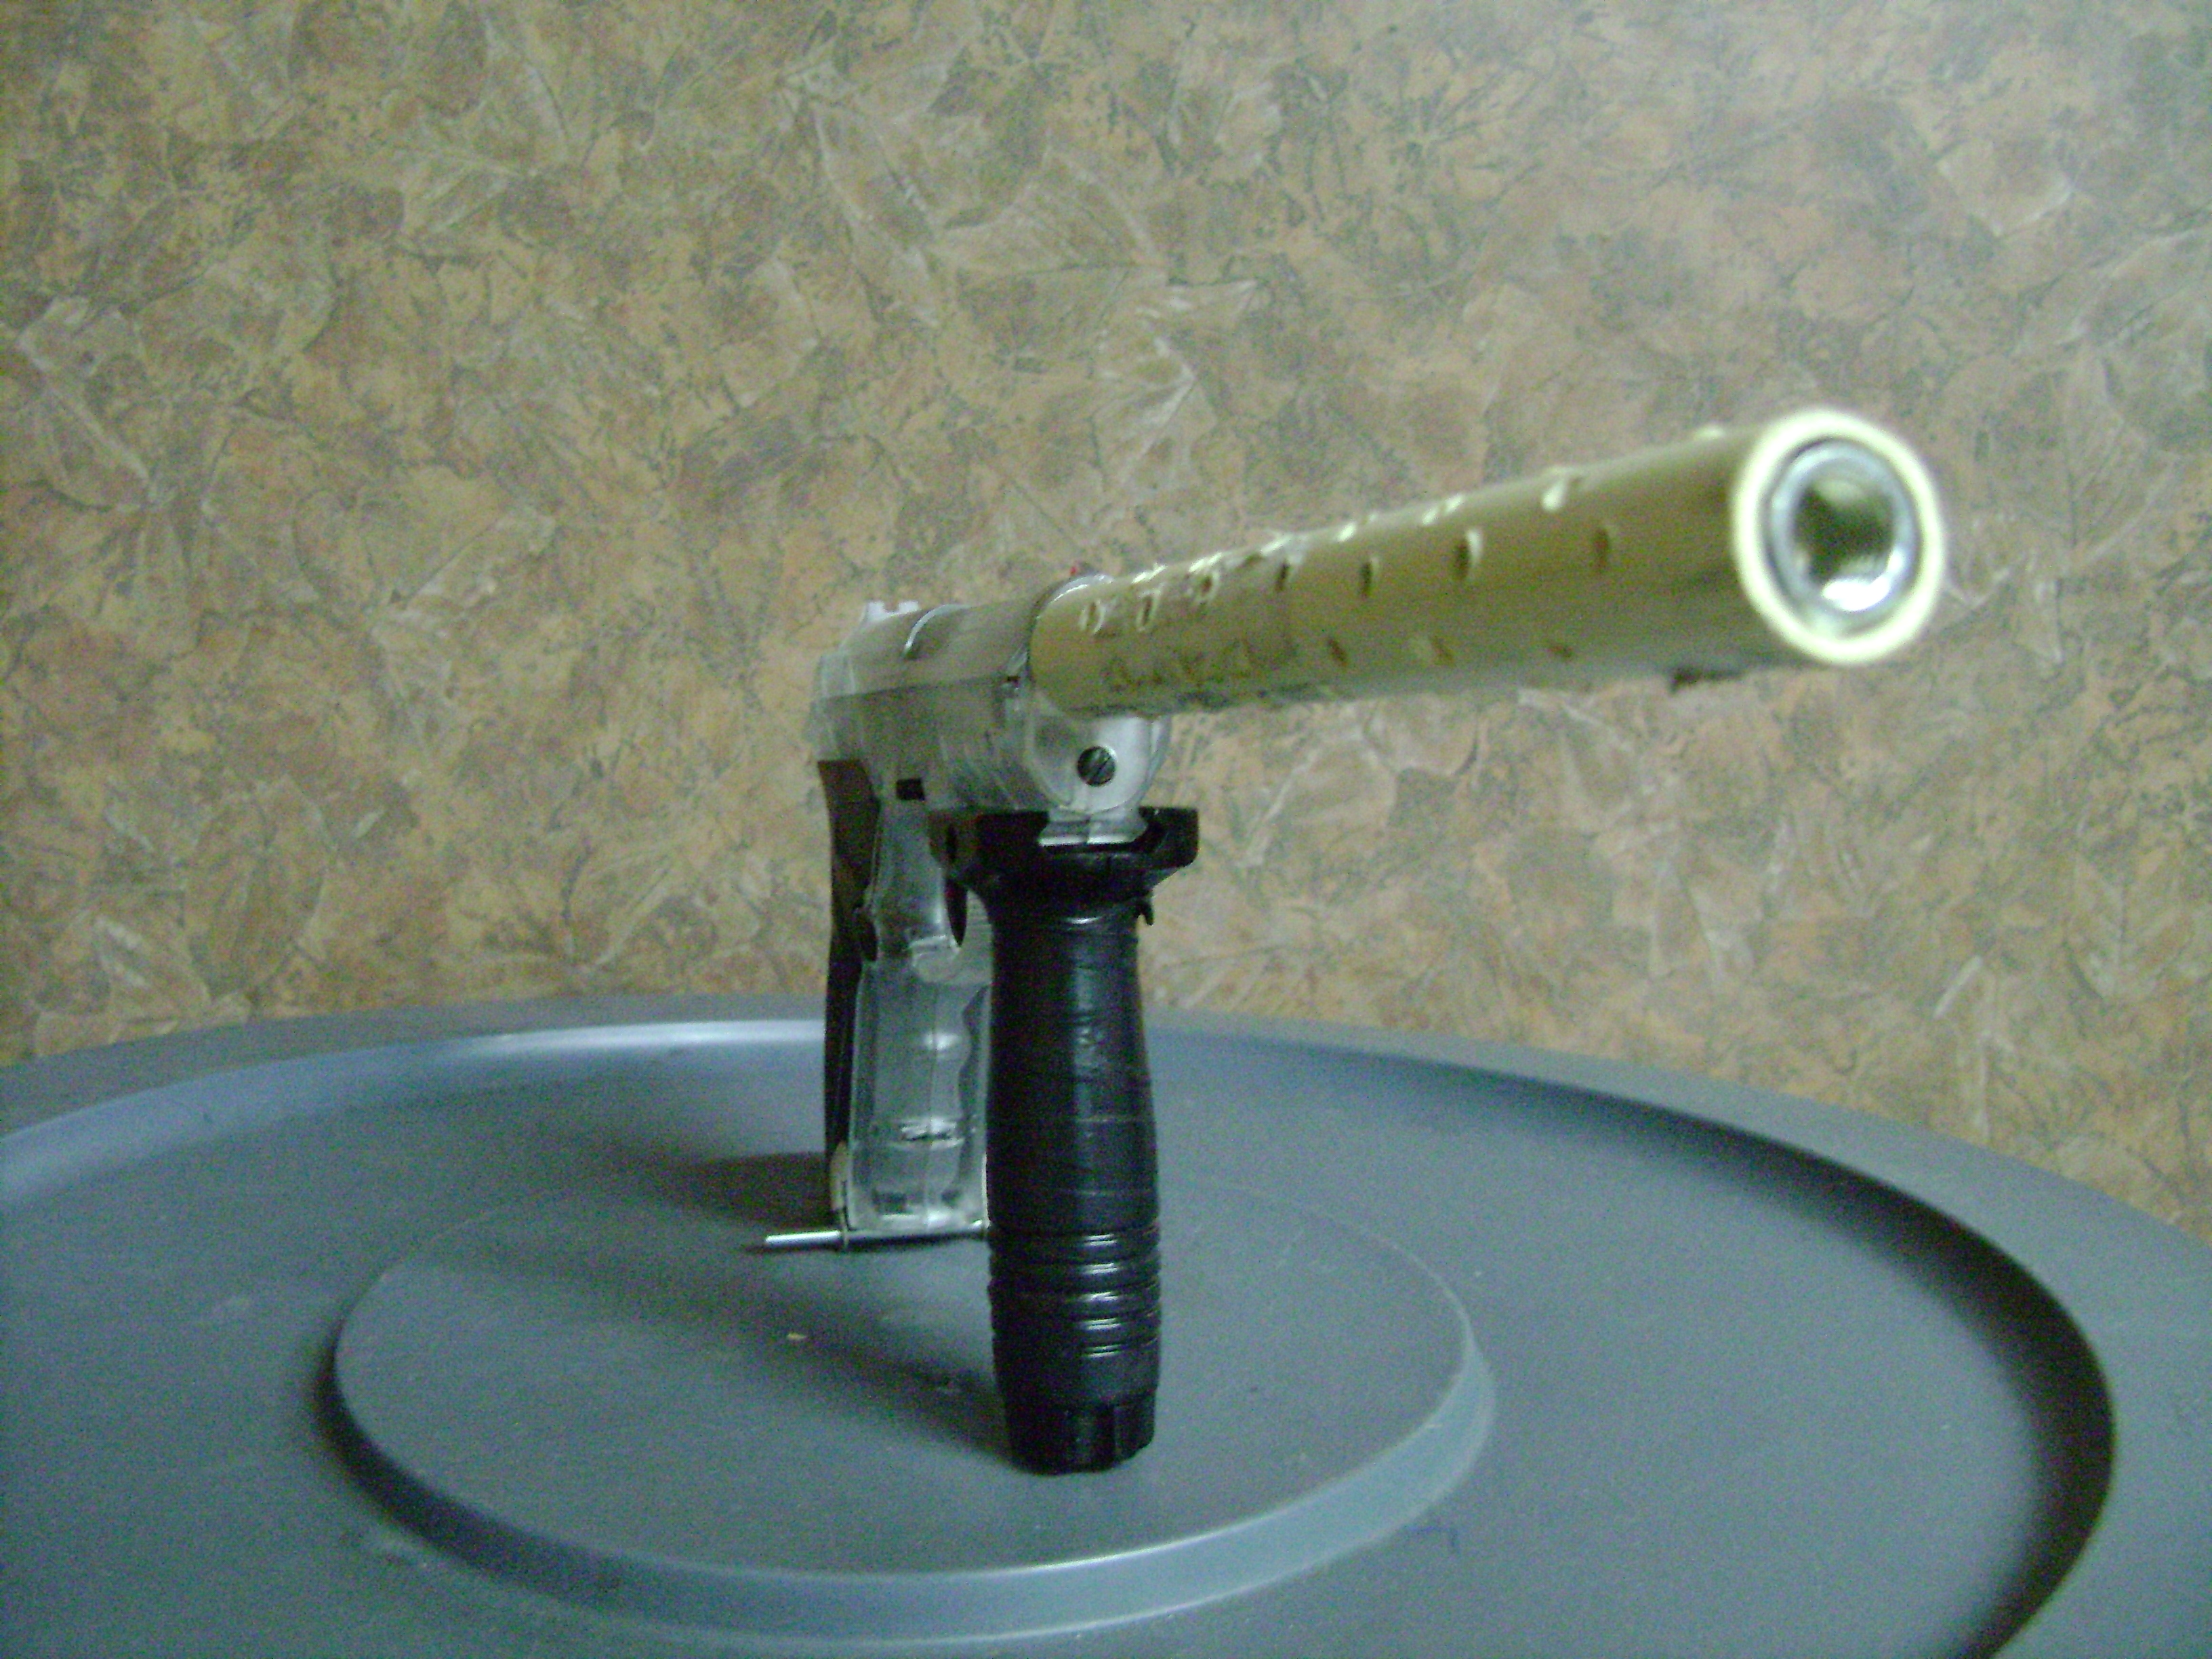 A Working Silencer for Your CO2 Airsoft Gun